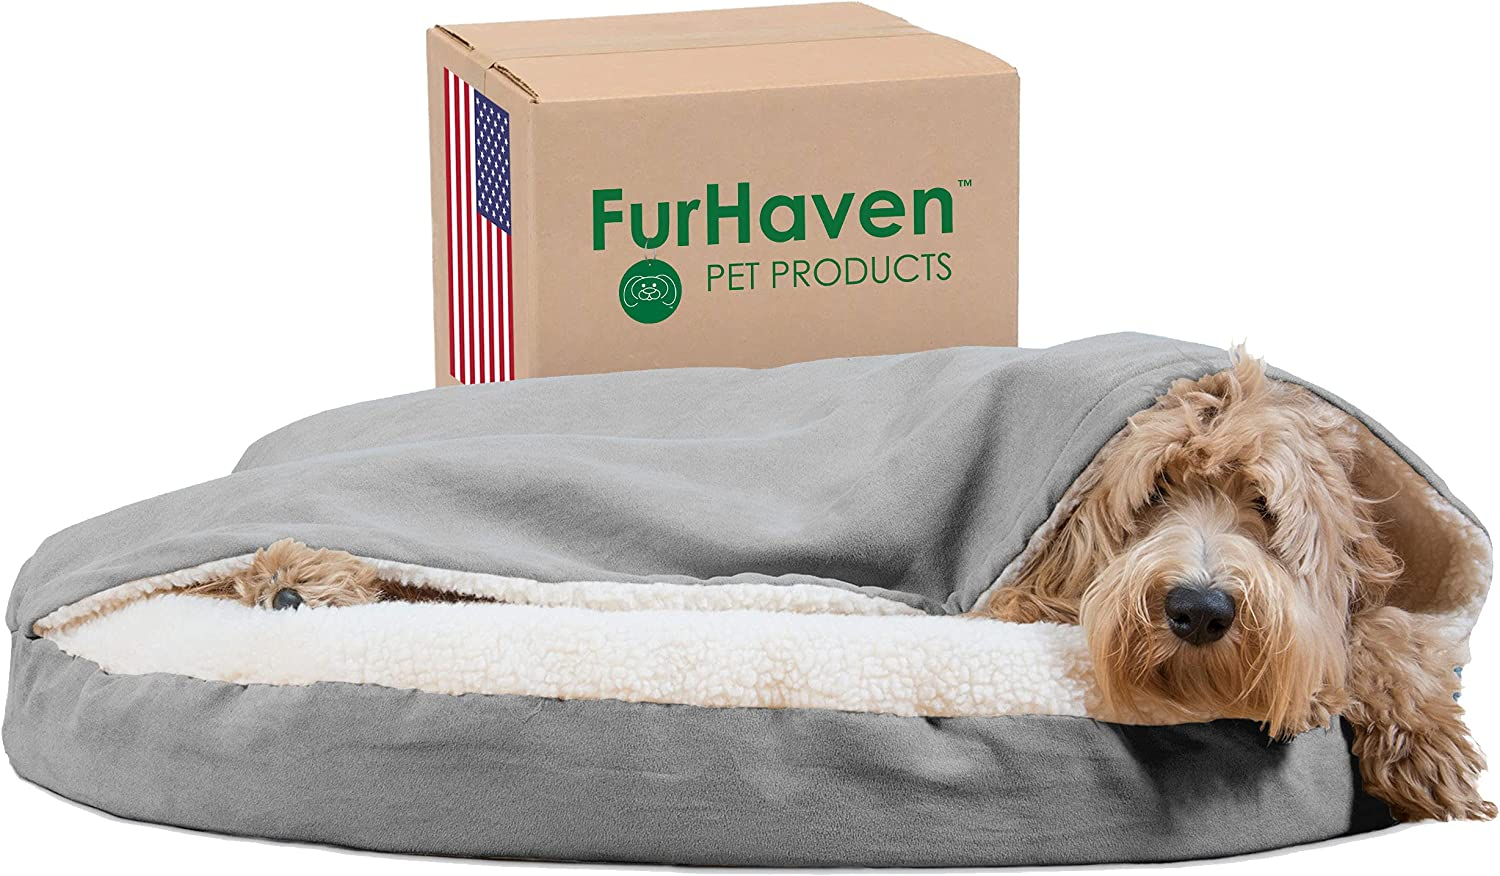 Furhaven Pet - Round Snuggery Hooded Dog Bed with Attached Blanket, Calming Anti-Anxiety Hooded Donut Bed, and More for Dogs and Cats - Multiple Colors, Sizes, and Styles